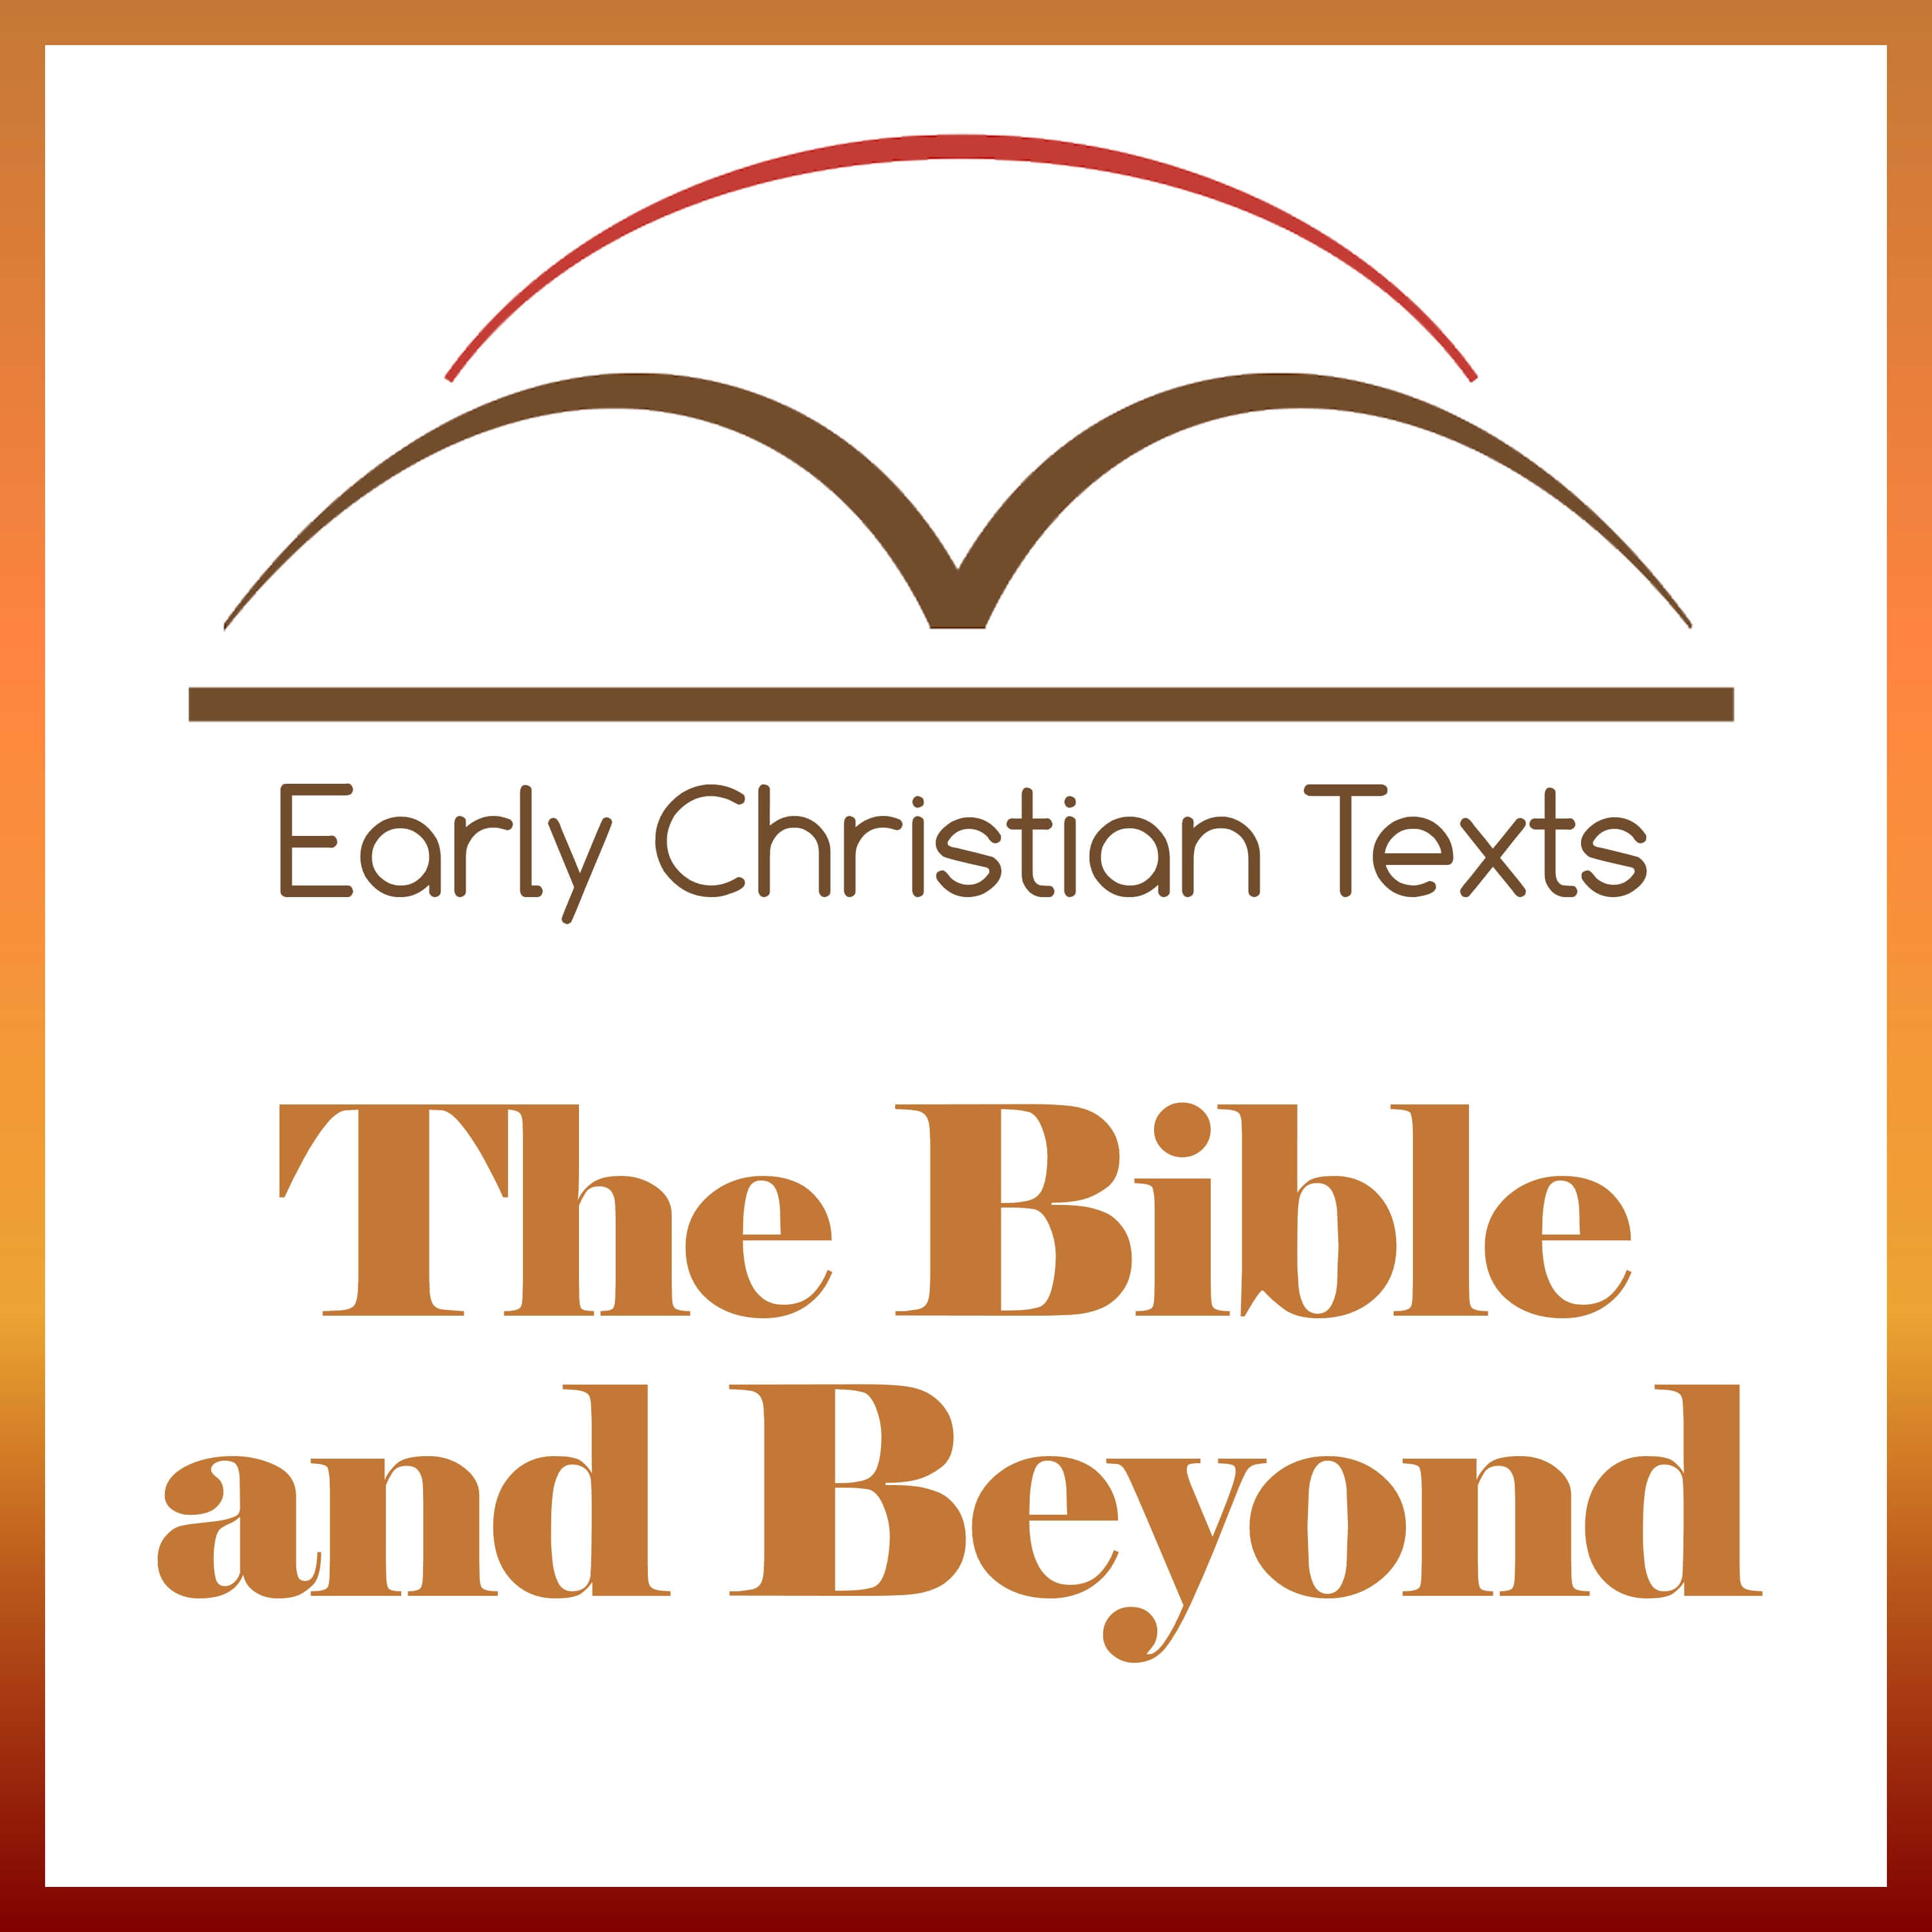 The Bible and Beyond